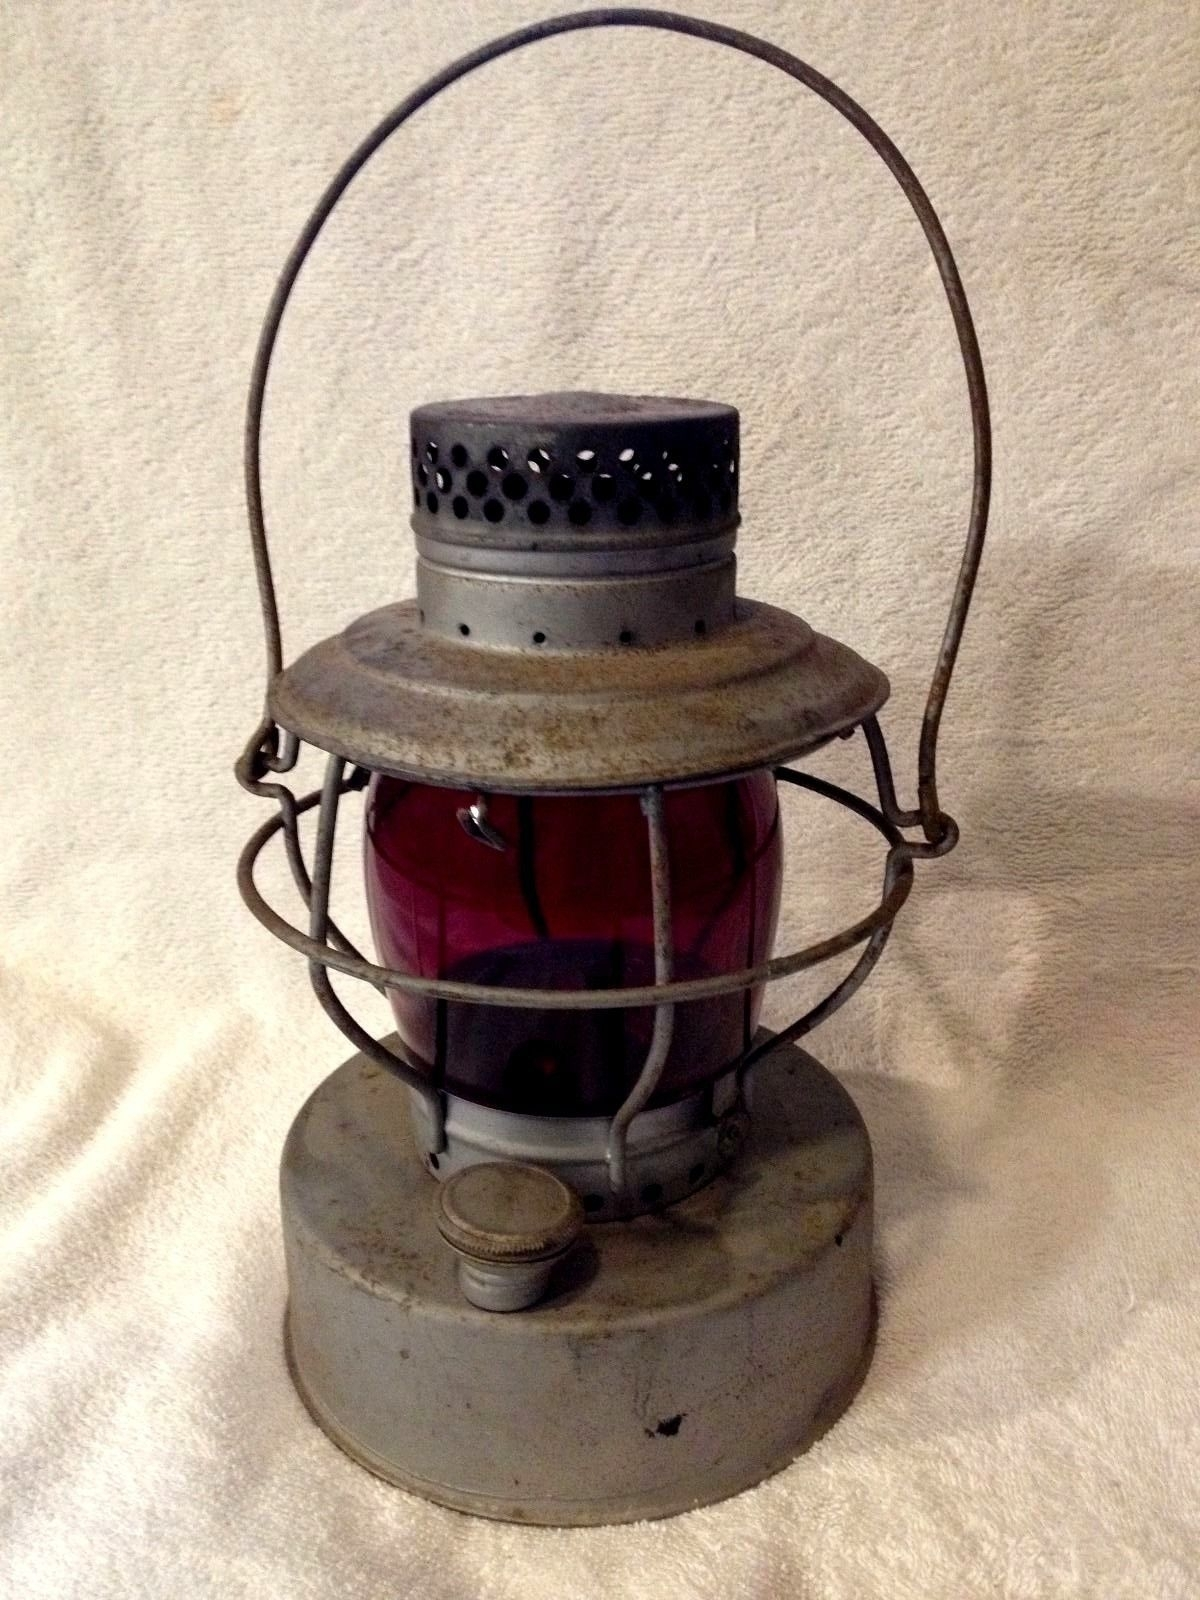 Handlan St. Louis Railroad Lantern Red Globe | Rr Lamps, Lanterns regarding Outdoor Railroad Lanterns (Image 10 of 20)